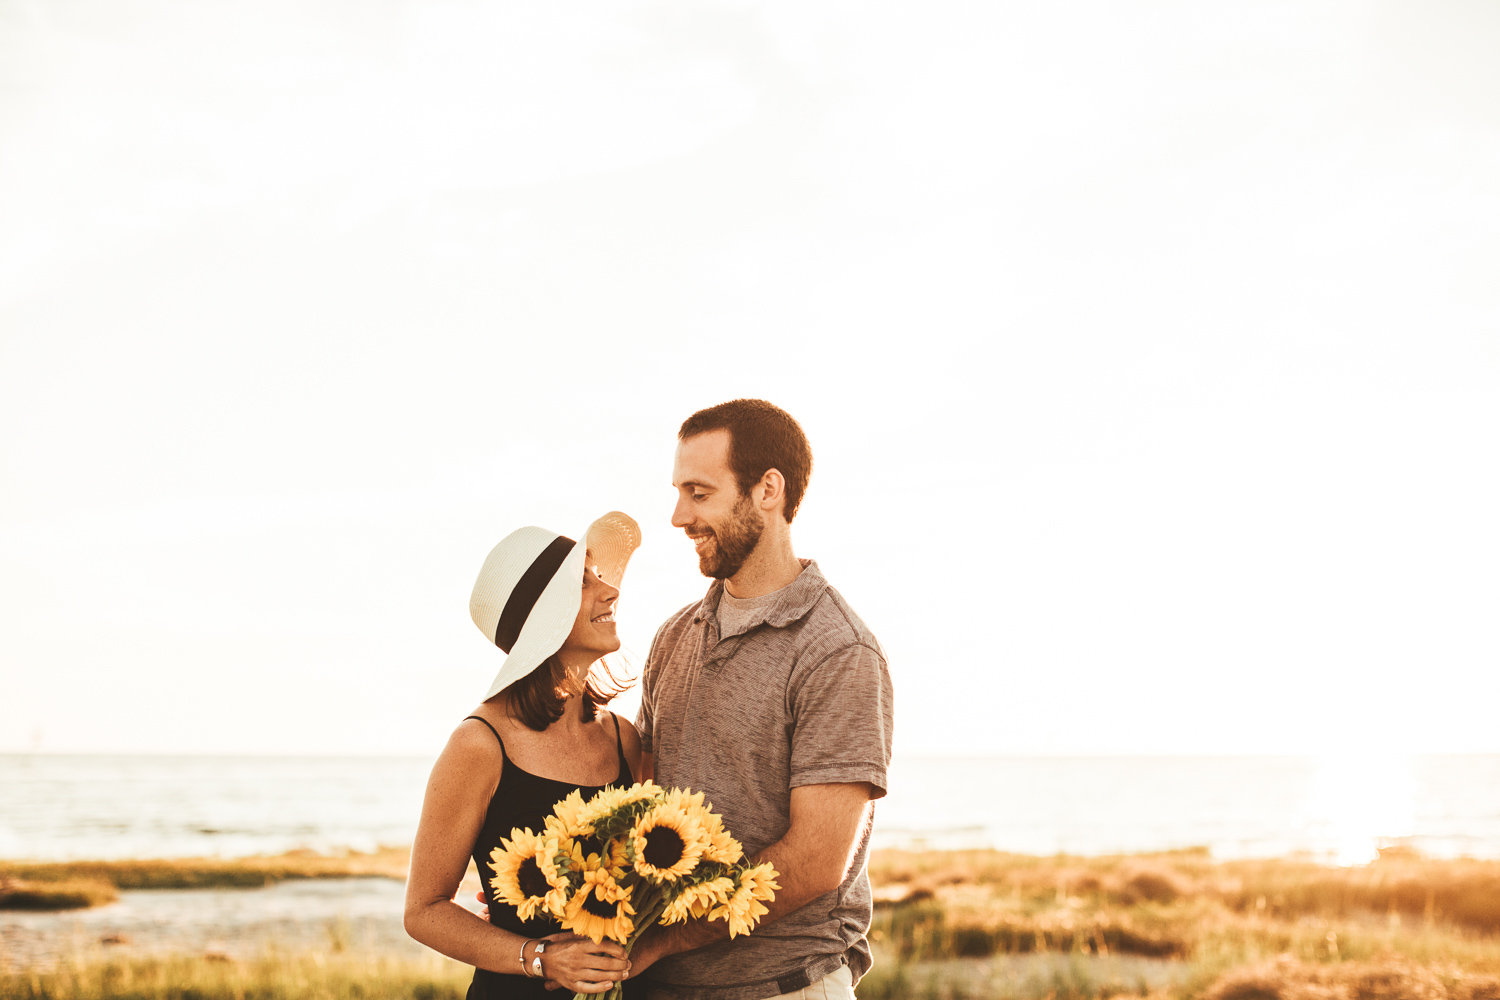 Sunflowers Engagement Session - Cape Cod Photographer